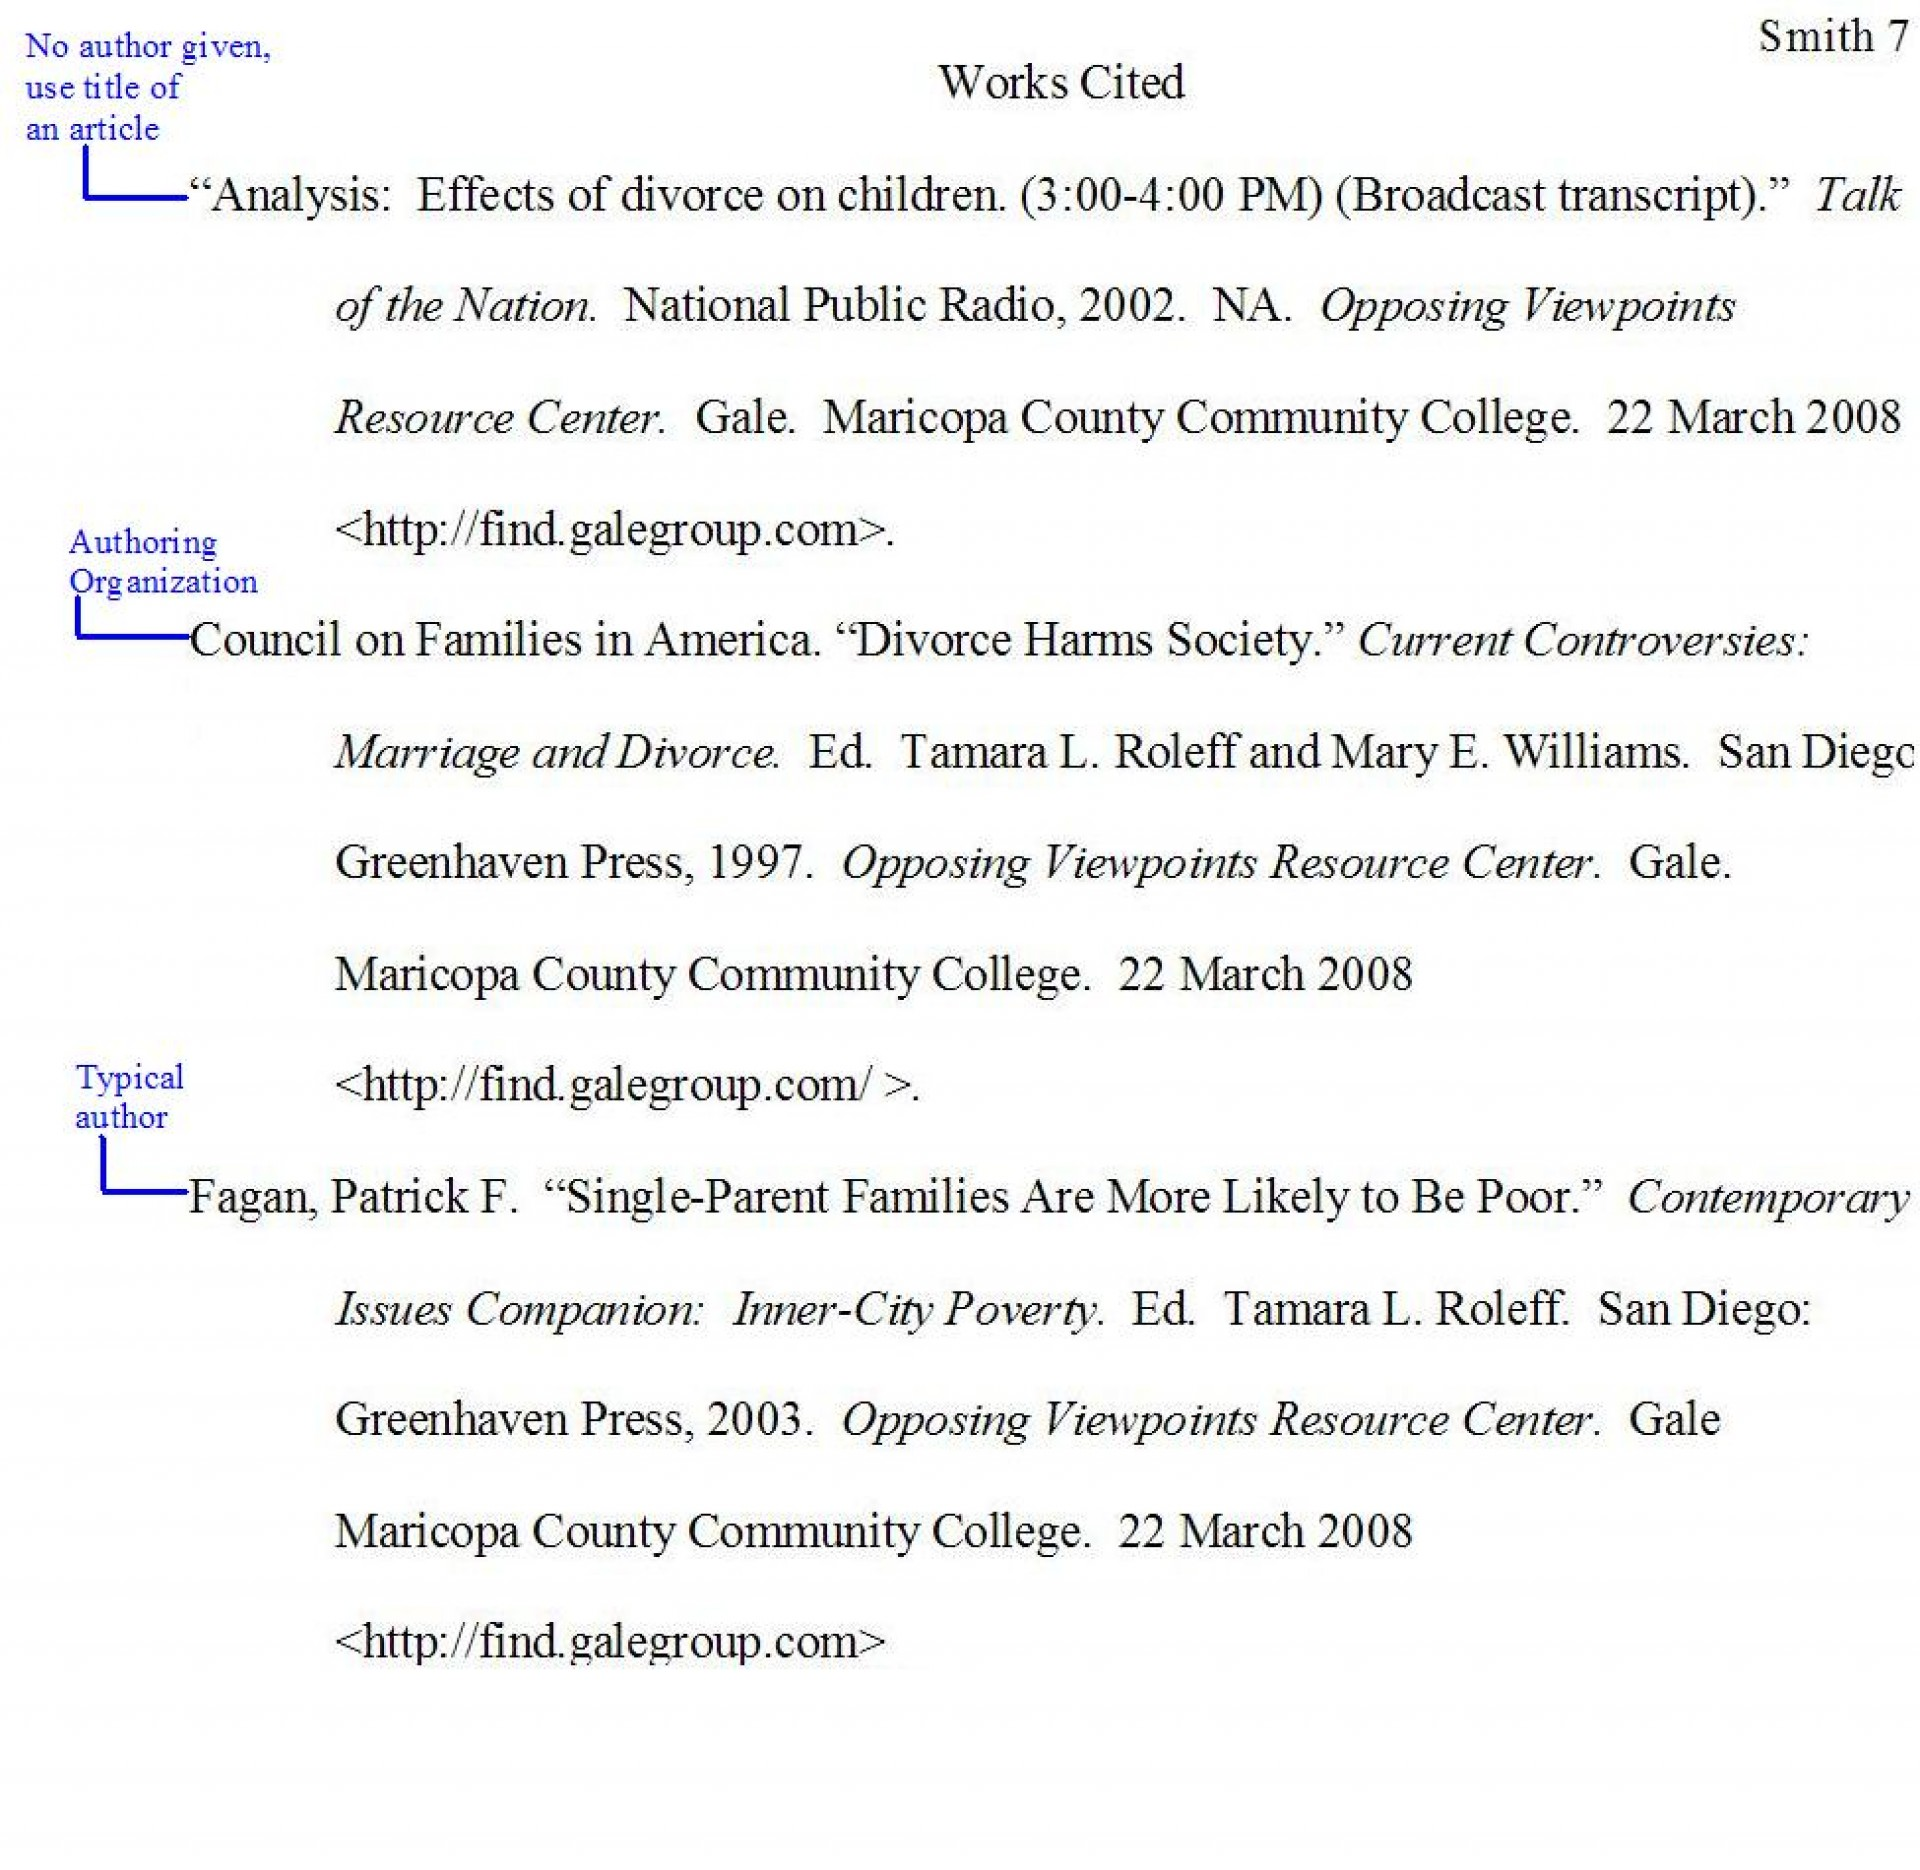 008 Citing Research Paper Mla Samplewrkctd Impressive A Citations In How To Cite 8 Using Format 1920